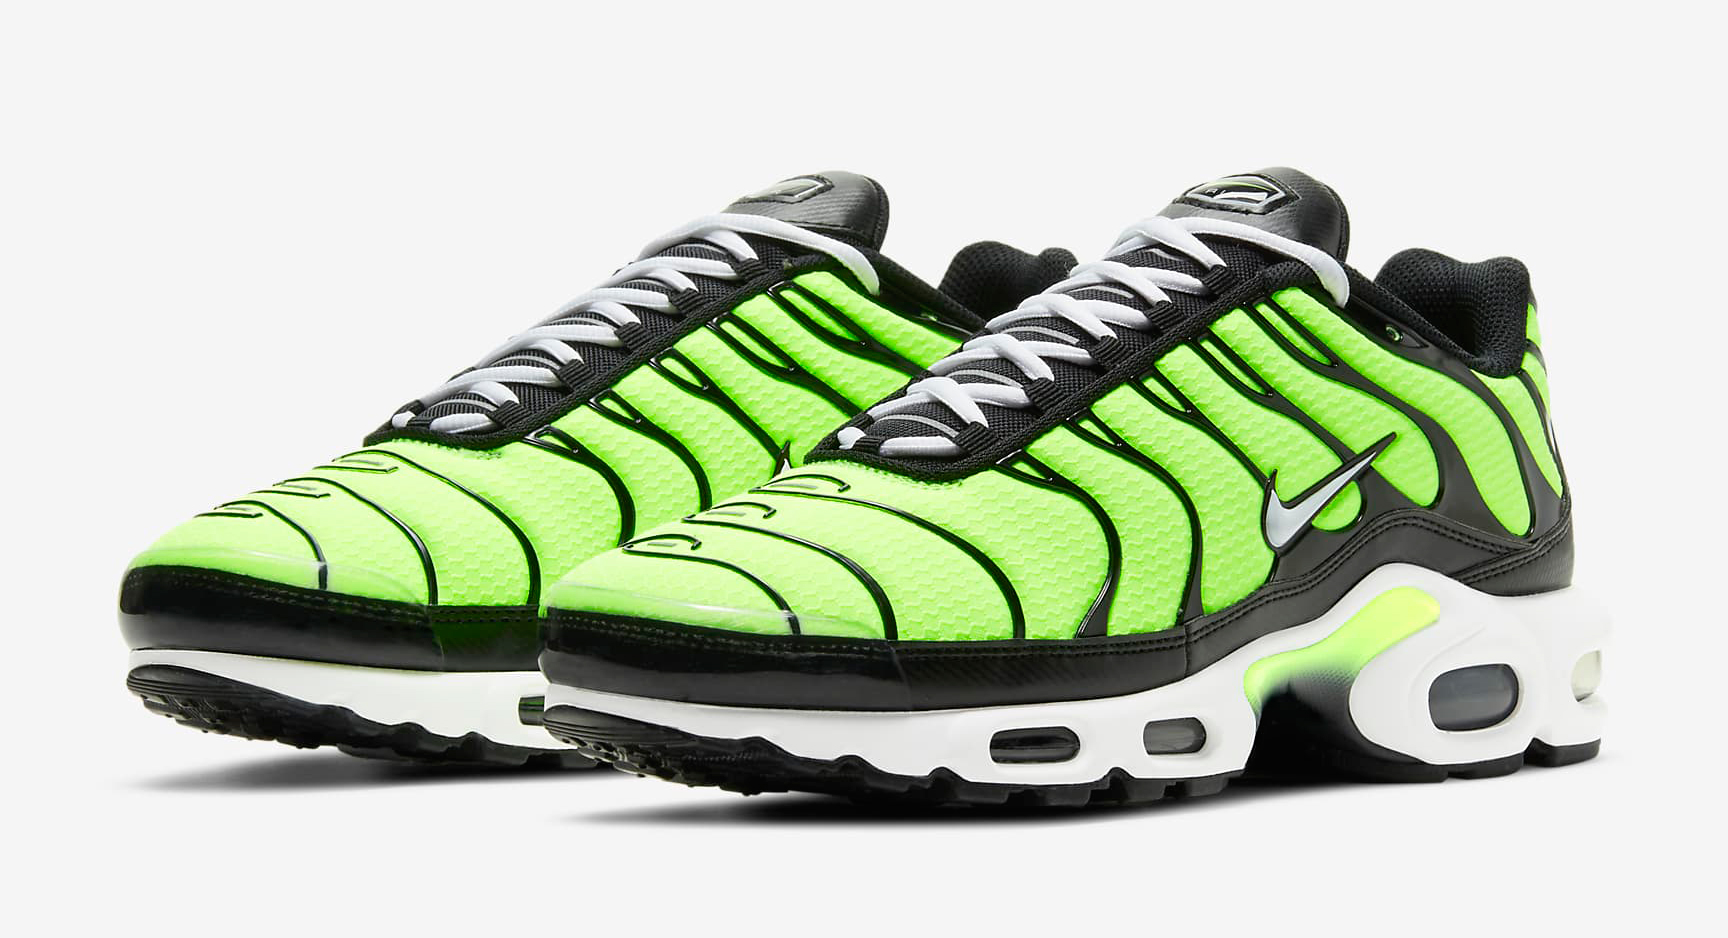 nike-air-max-plus-hot-lime-release-date-price-where-to-buy-1